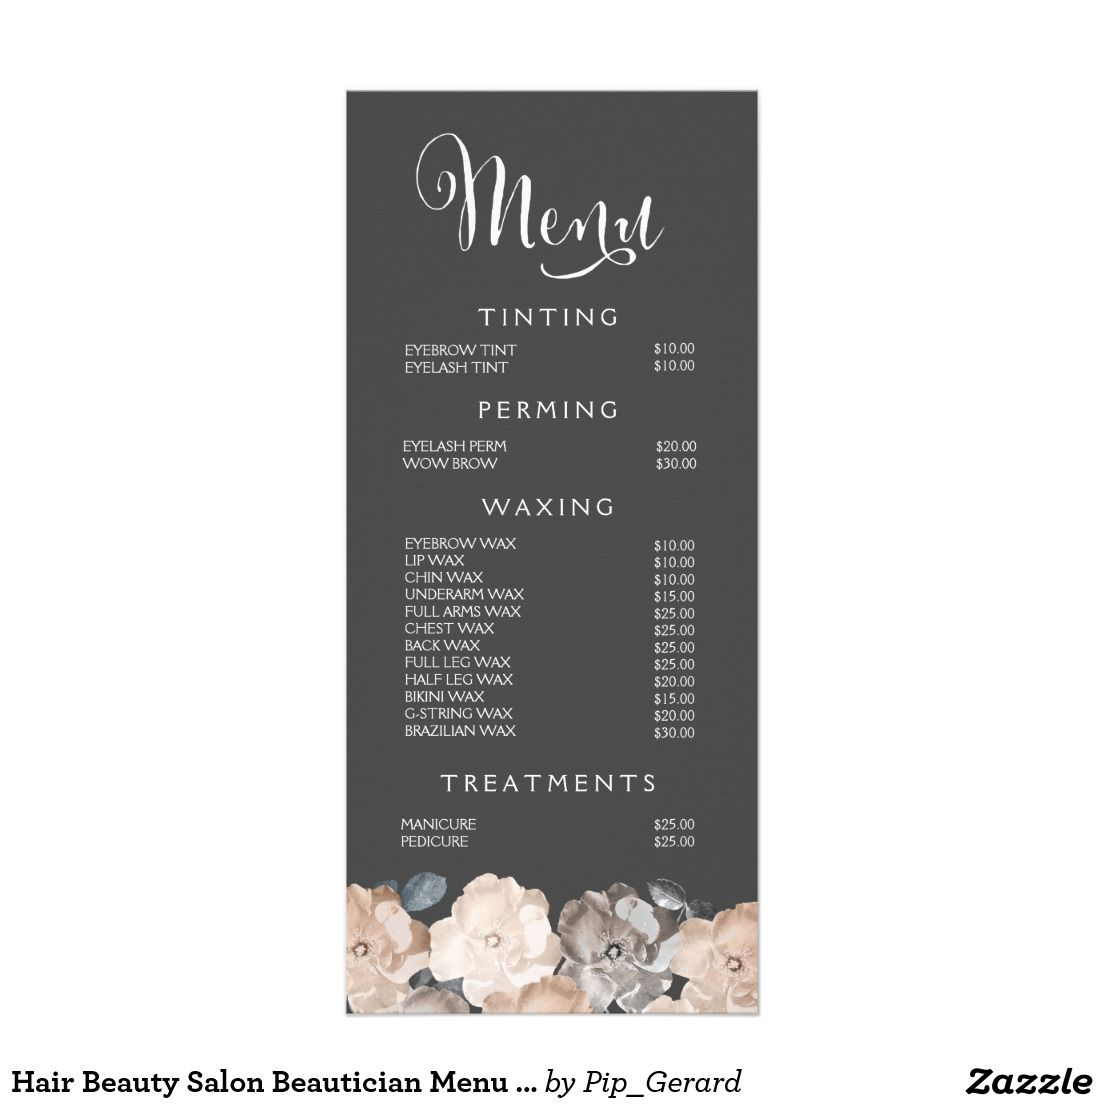 spa menu template Google Search Salon menu, Spa menu